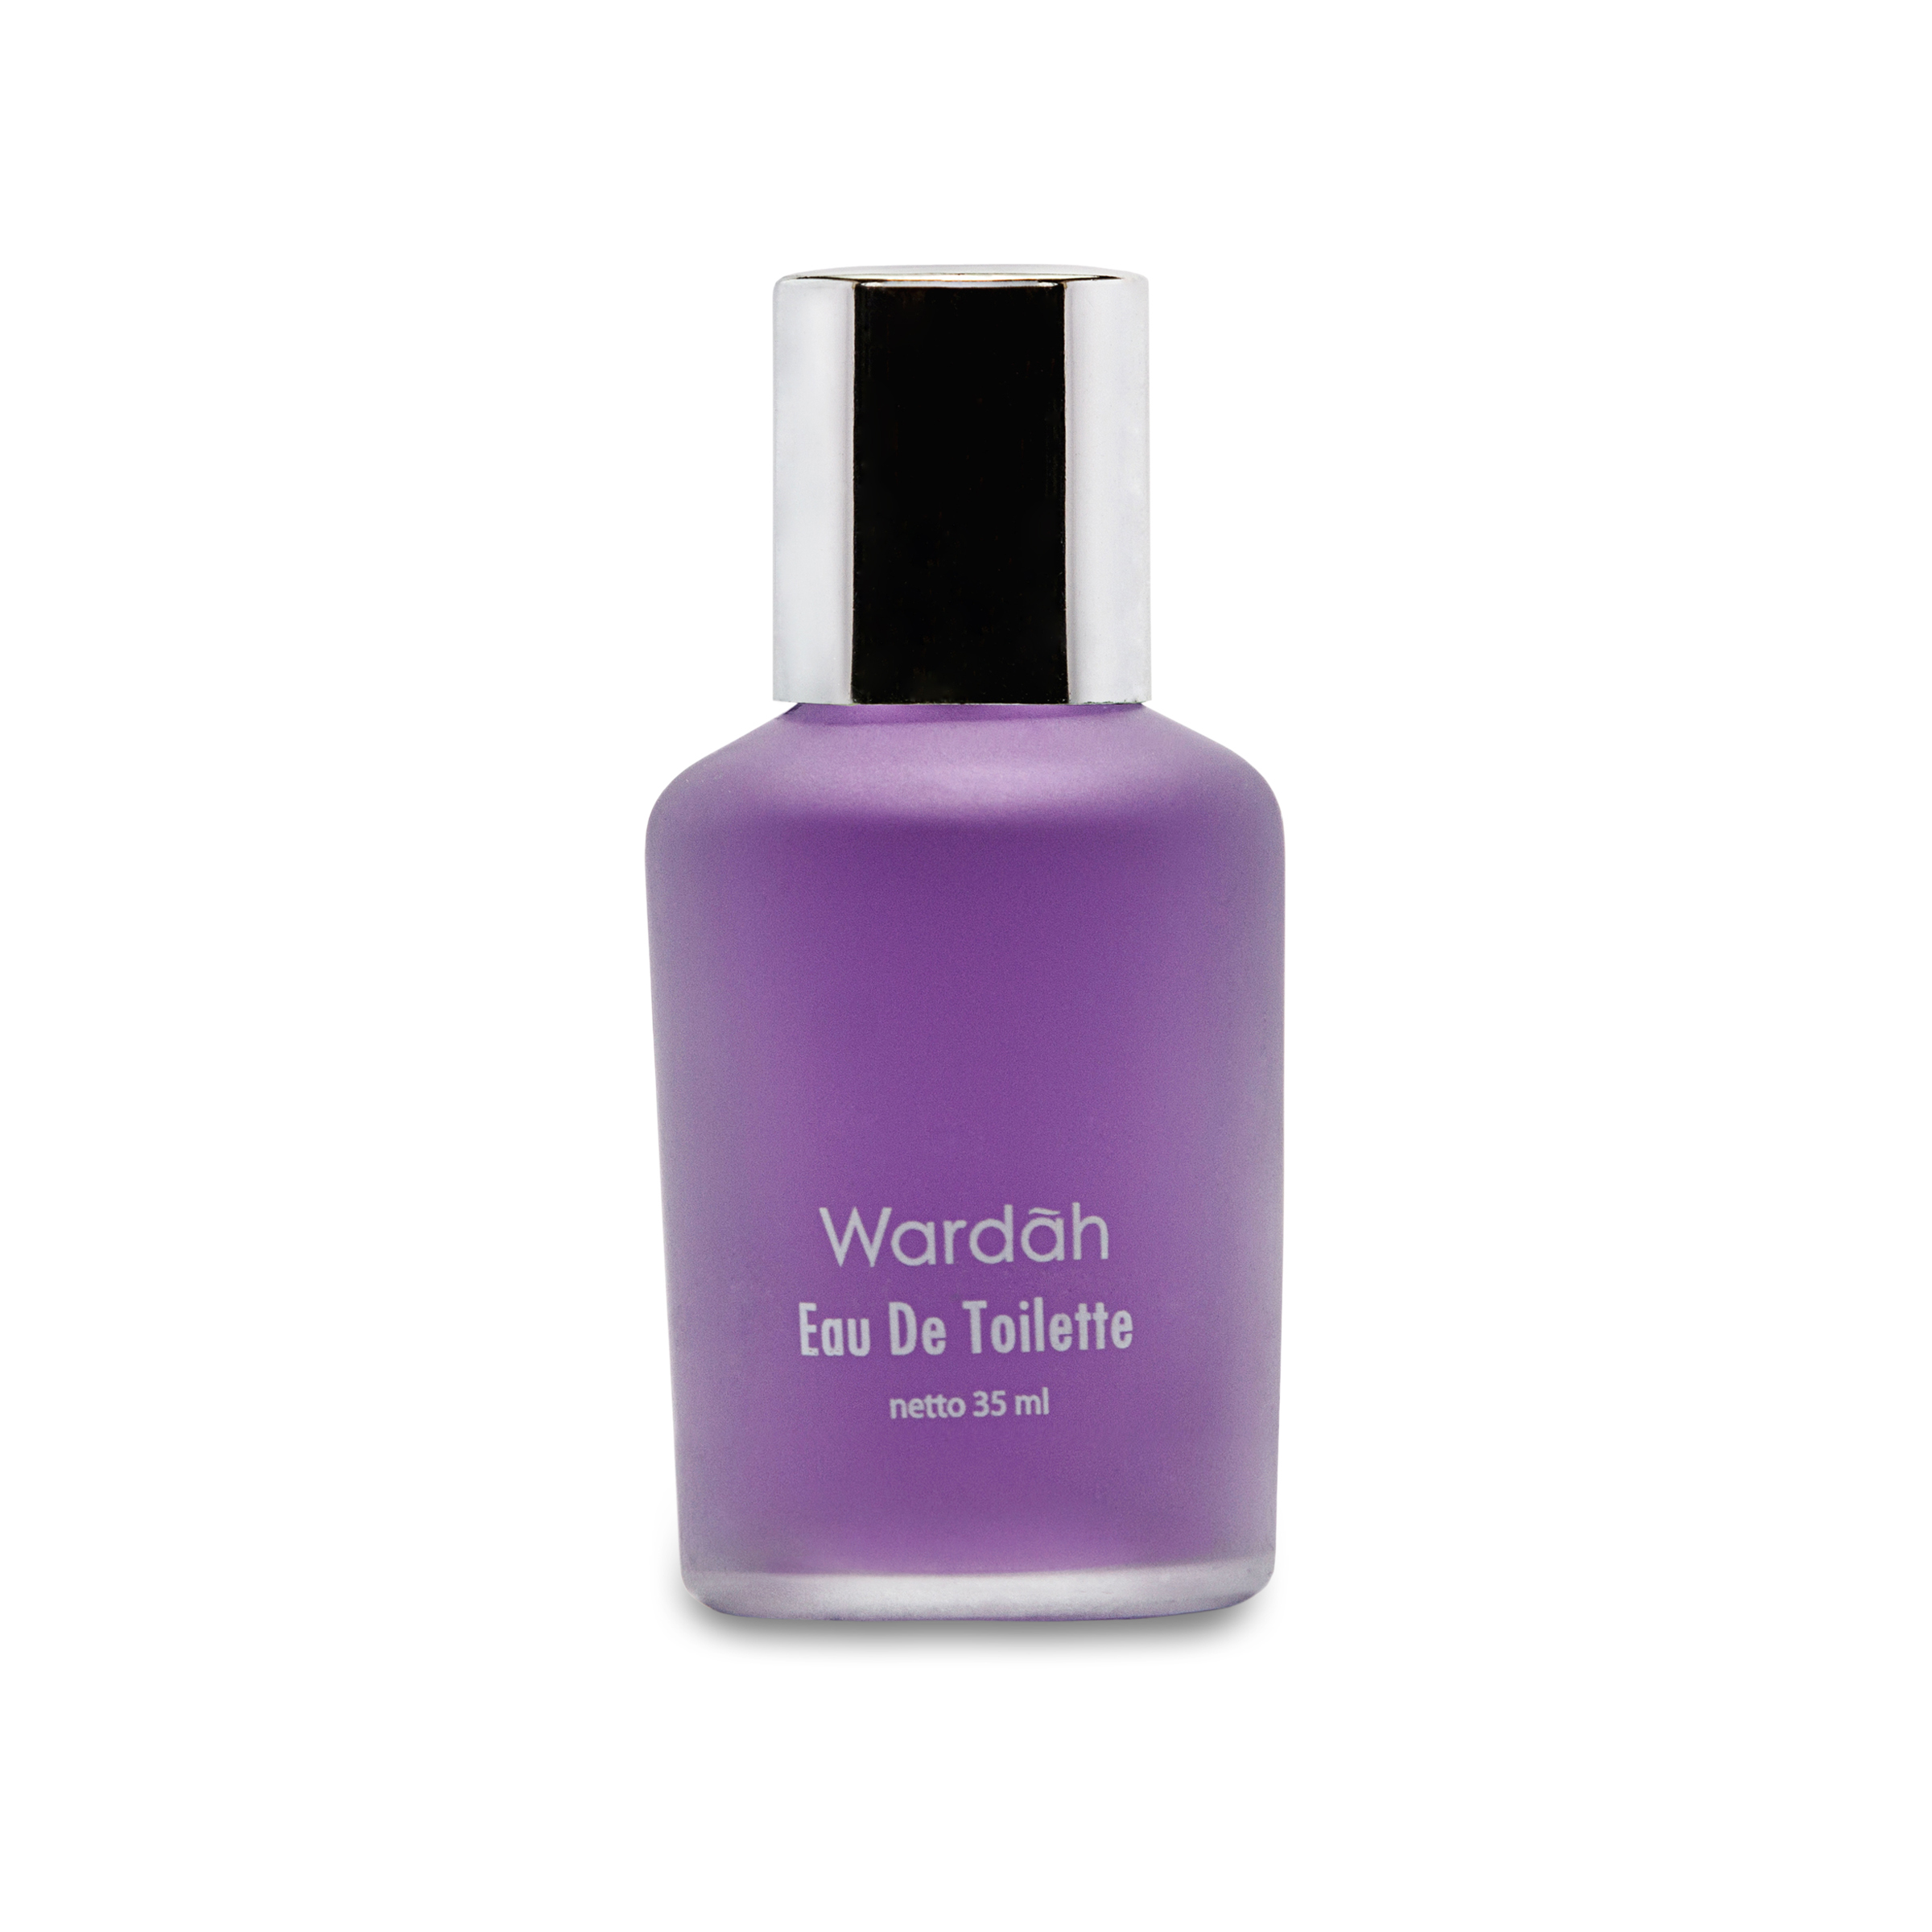 Wardah Eau De Toilette Scentsation Shine 35 Ml